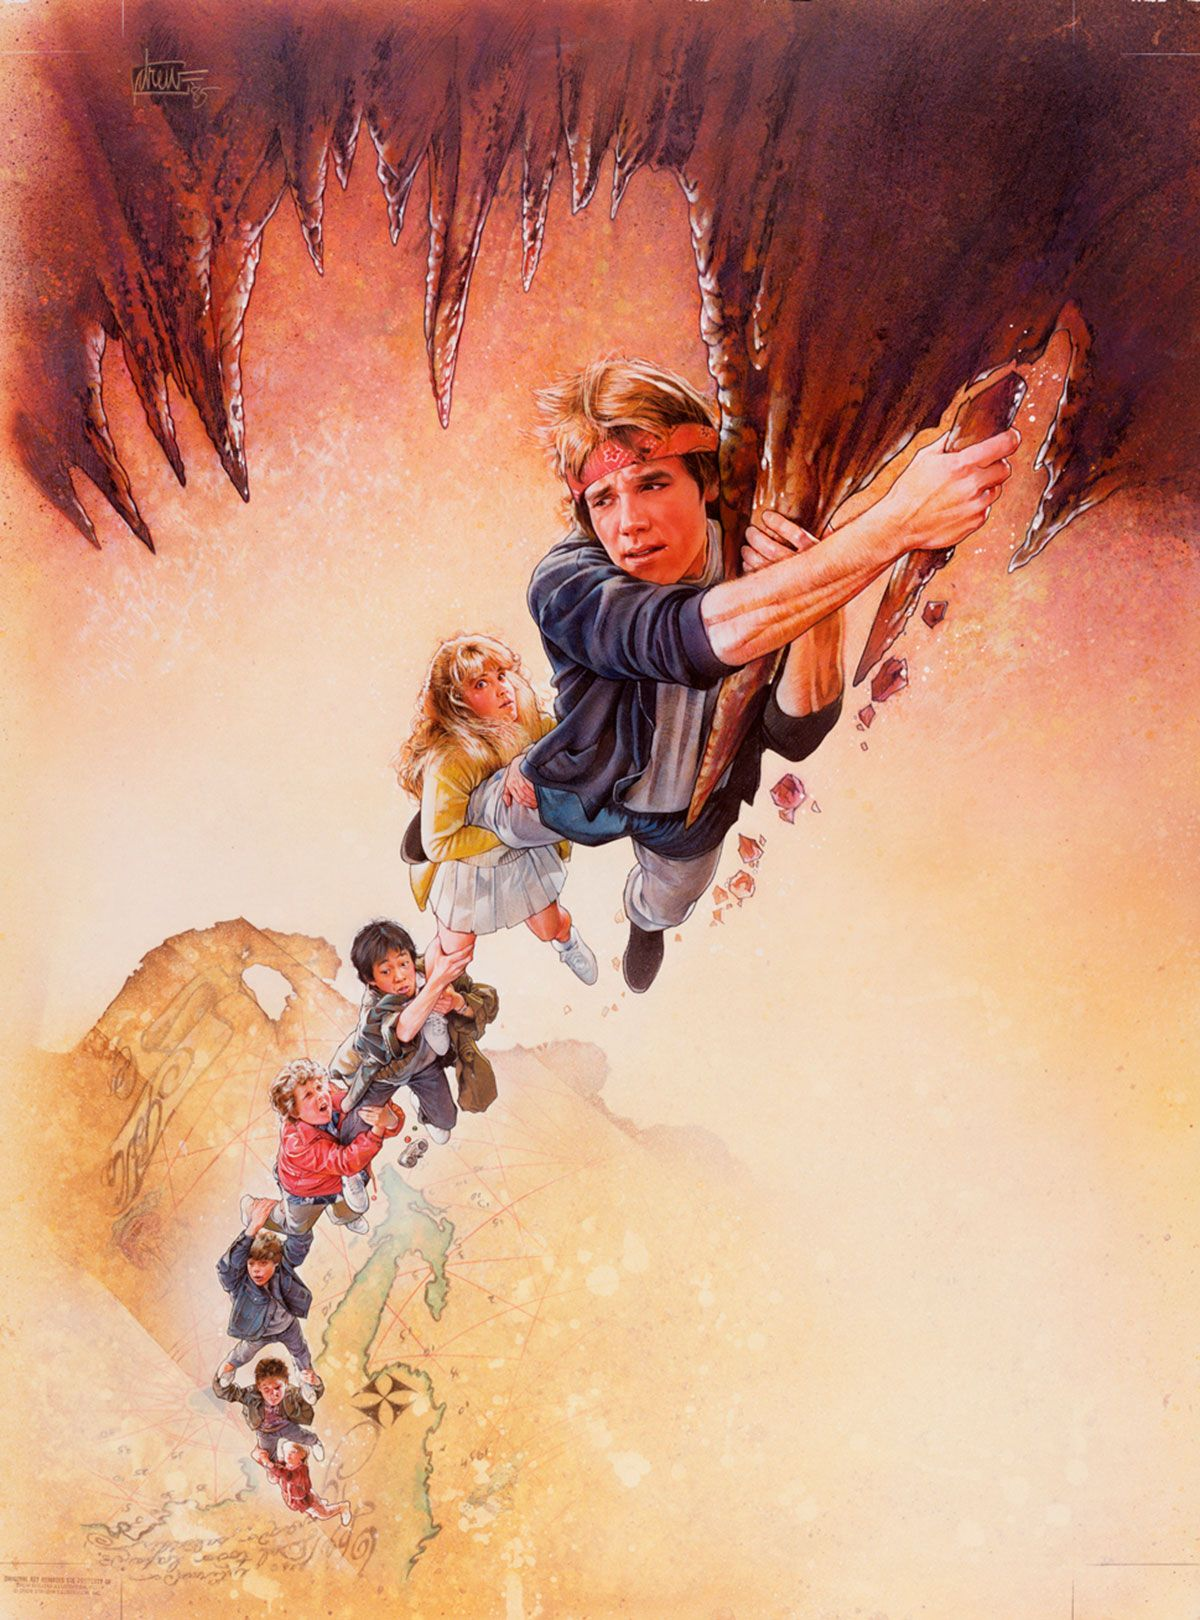 """Goonies, The Medium: Acrylic paints & colored pencils on gessoed board Size: 30x40 inches Year 1985 In the decades following its release, The Goonies has gained a cult following primarily comprising people who were children or teens in the 1980s. Signed upper left corner """"drew '85"""" © Copyright Warner Borthers Inc. 1985"""